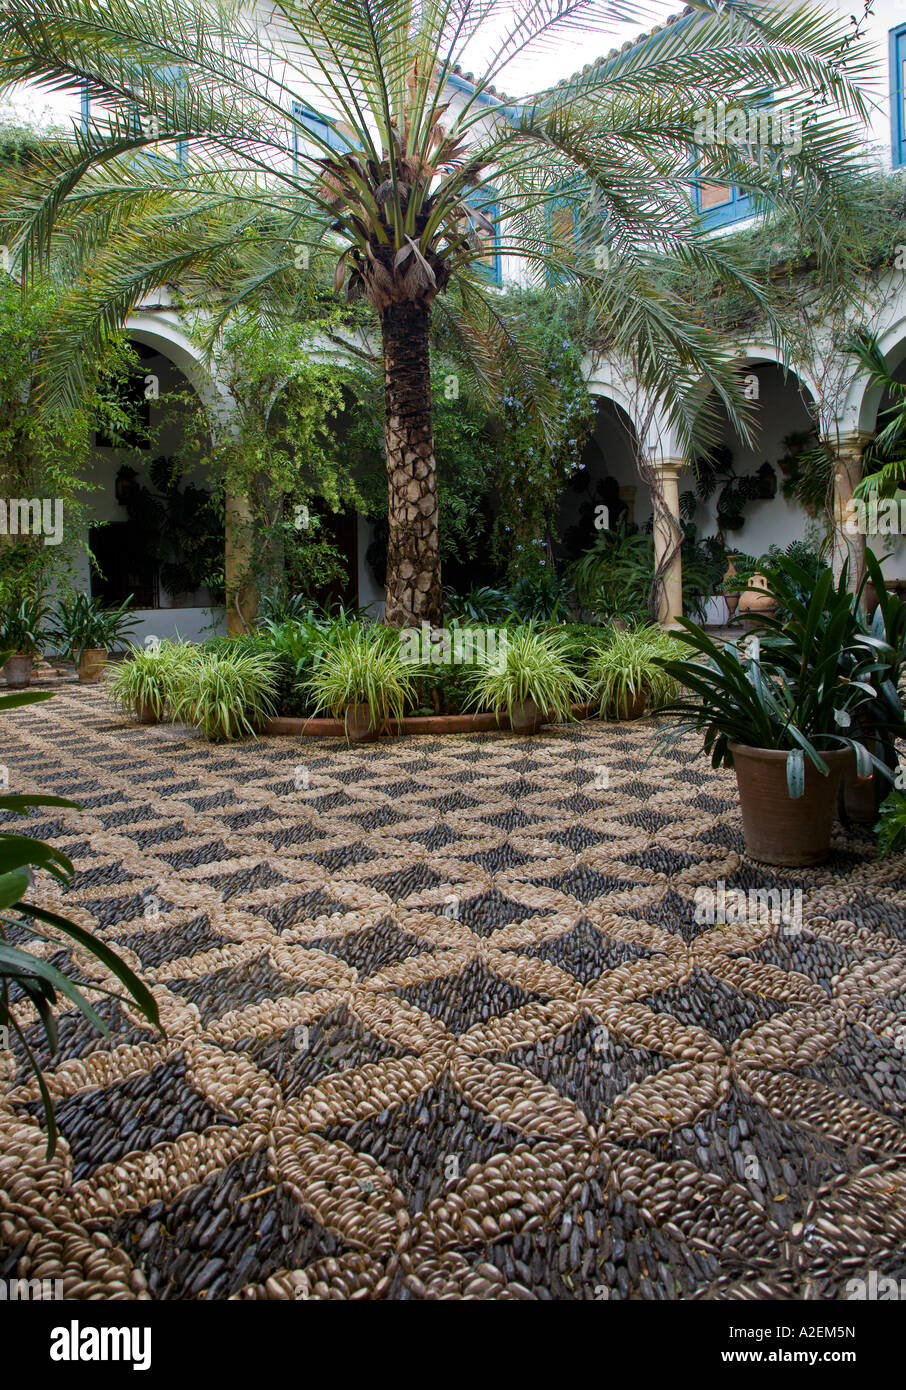 Pebble mosaic courtyard in the 15th Century Viana Palace Cordoba Andalucia, Spain. 2006 - Stock Image